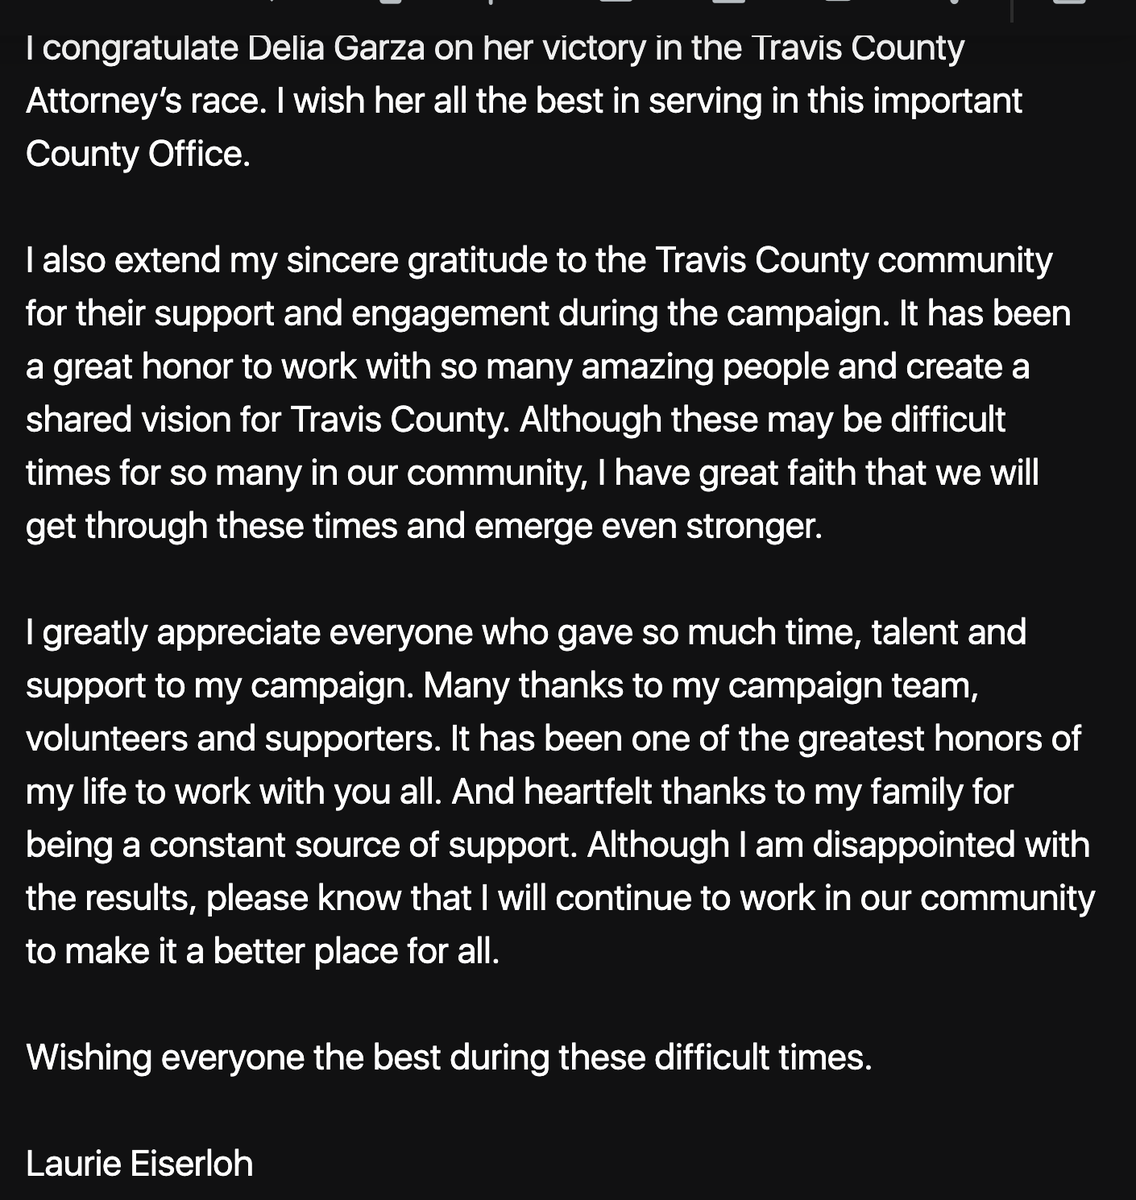 EISERLOH CONCEDES: Delia Garza will be Travis County's next County Attorney. https://t.co/Mnk3ygQrdw